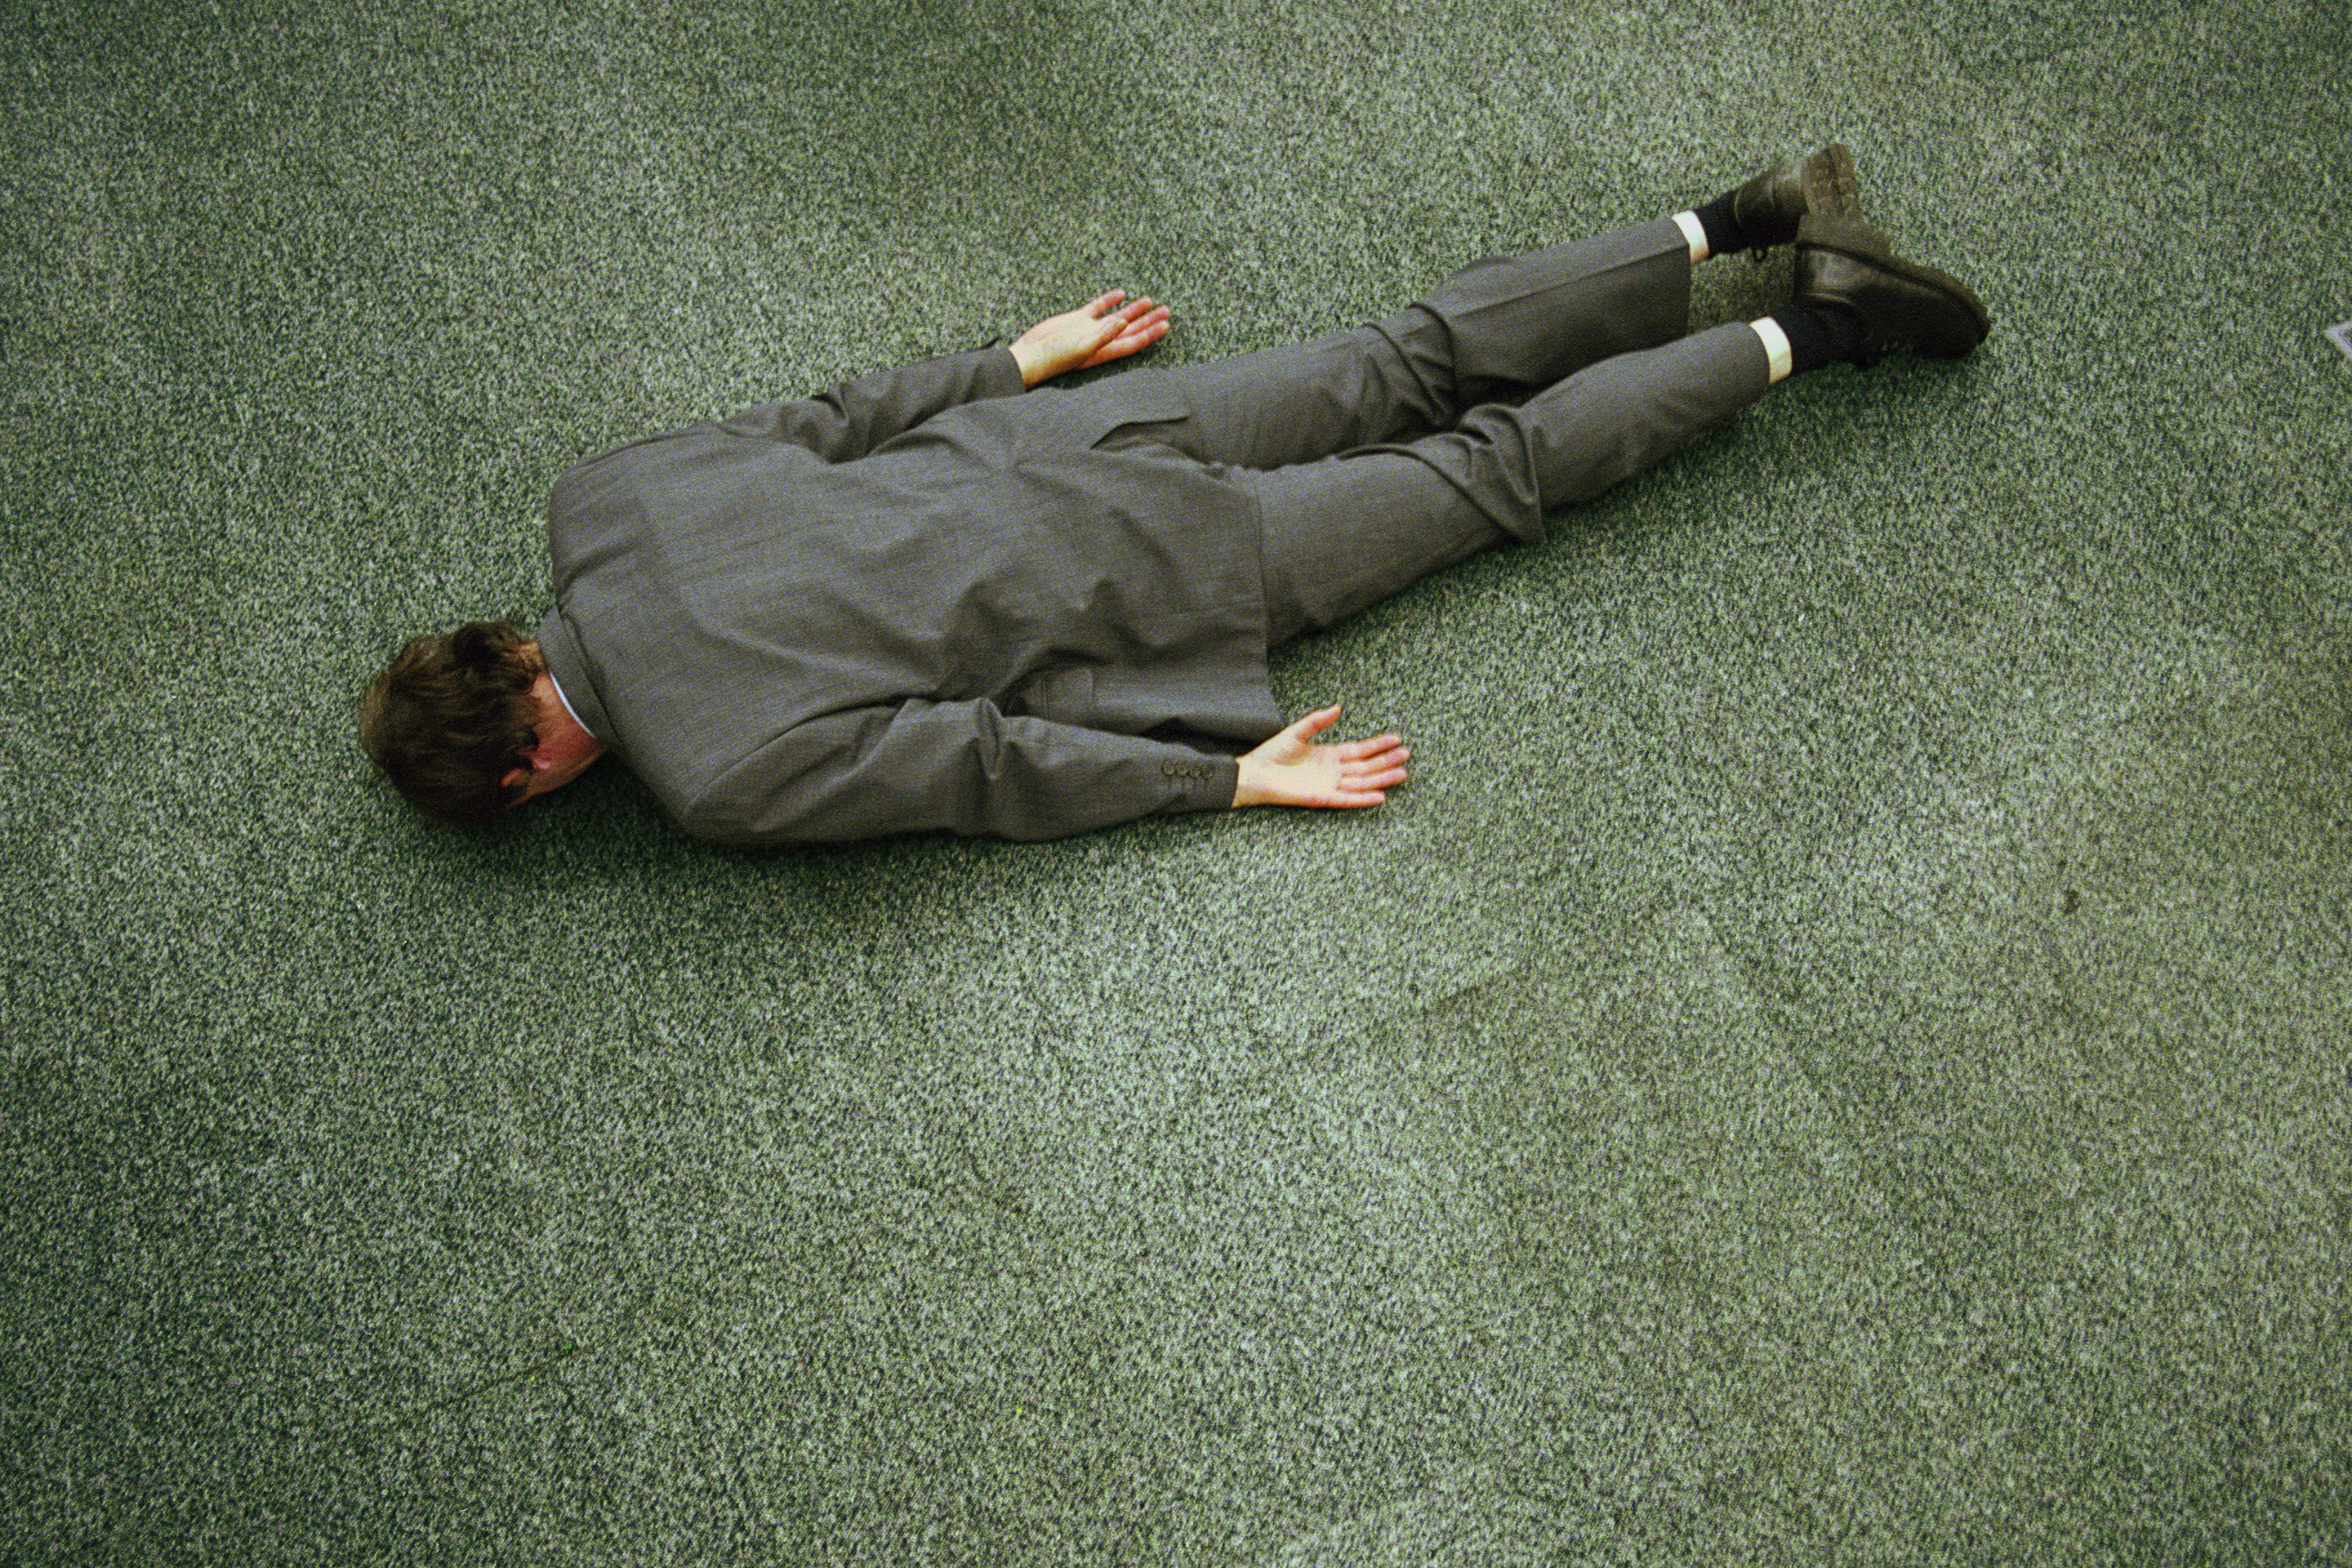 Businessman lying face down on floor, elevated view